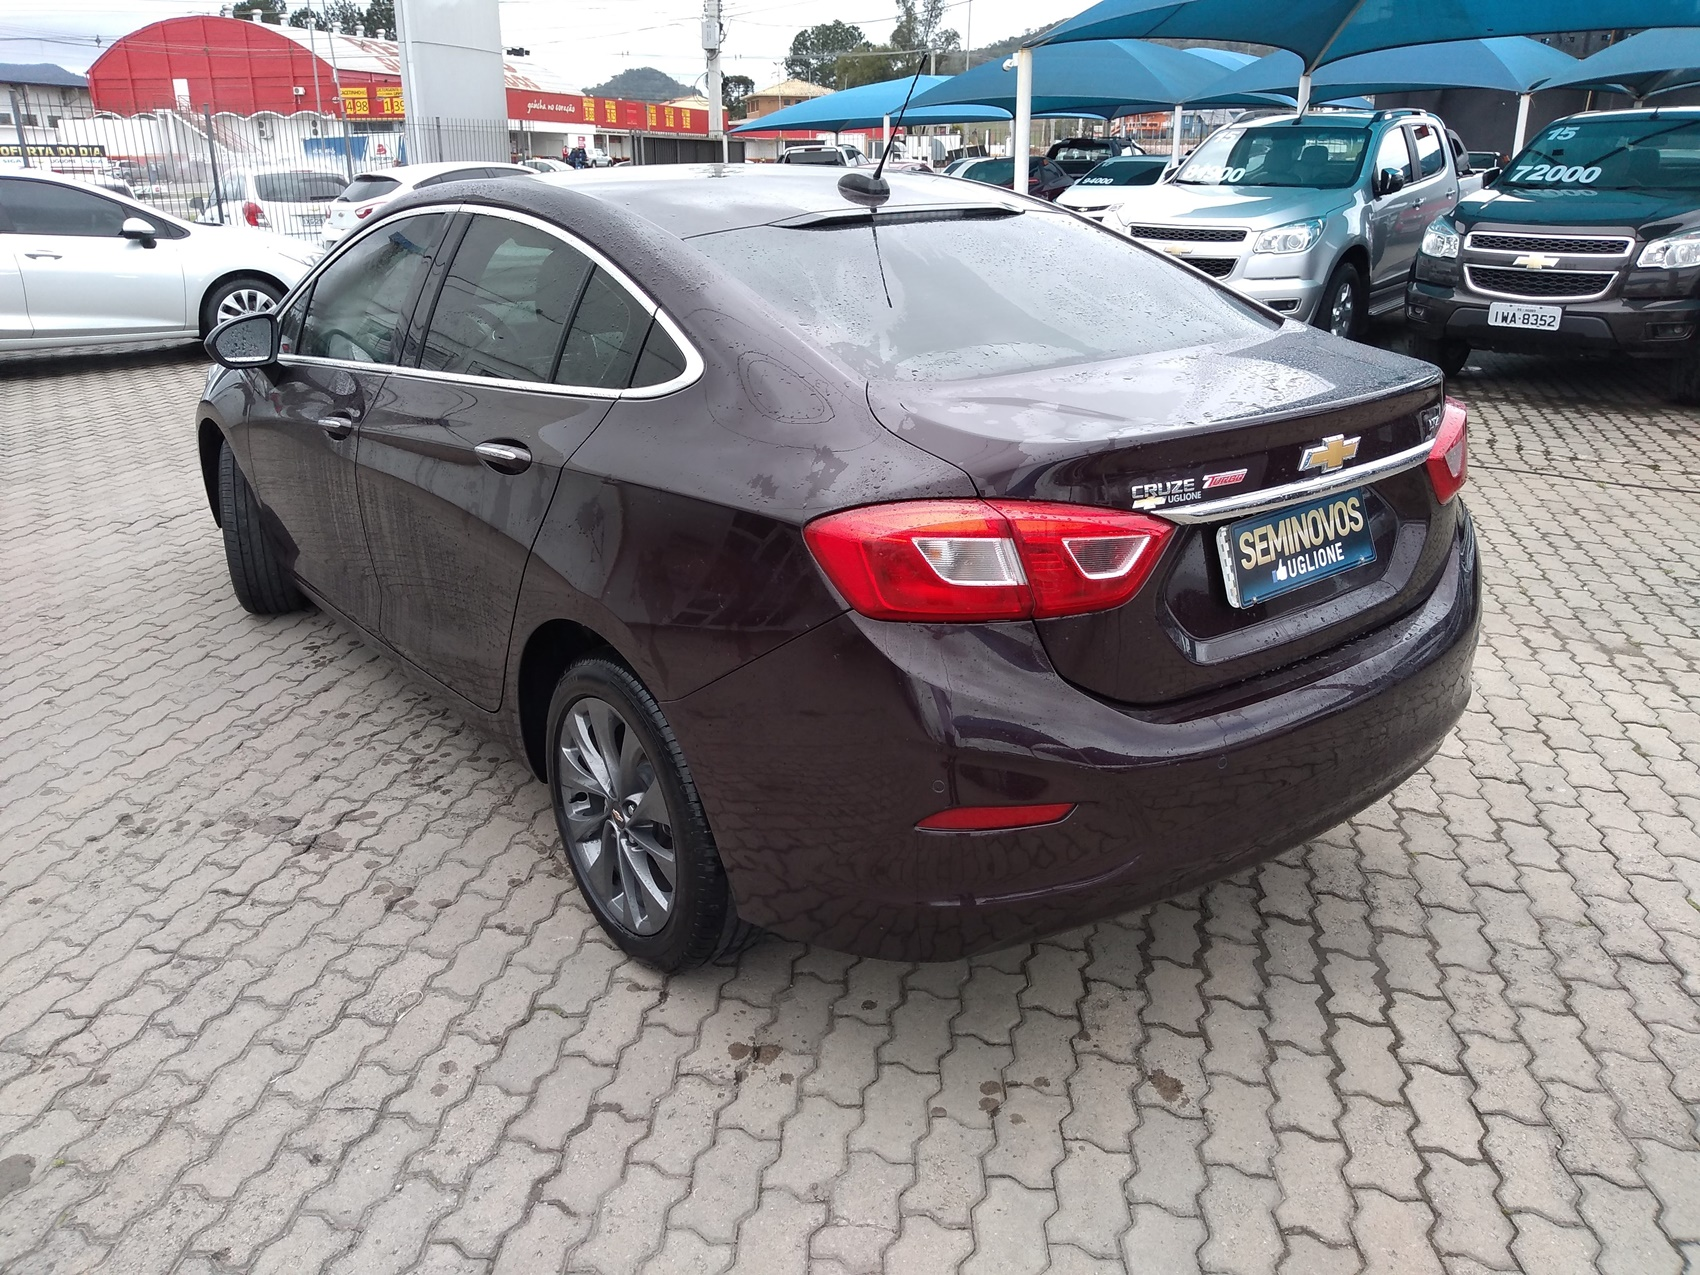 CHEVROLET CRUZE LTZ TURBO 1.4 2016